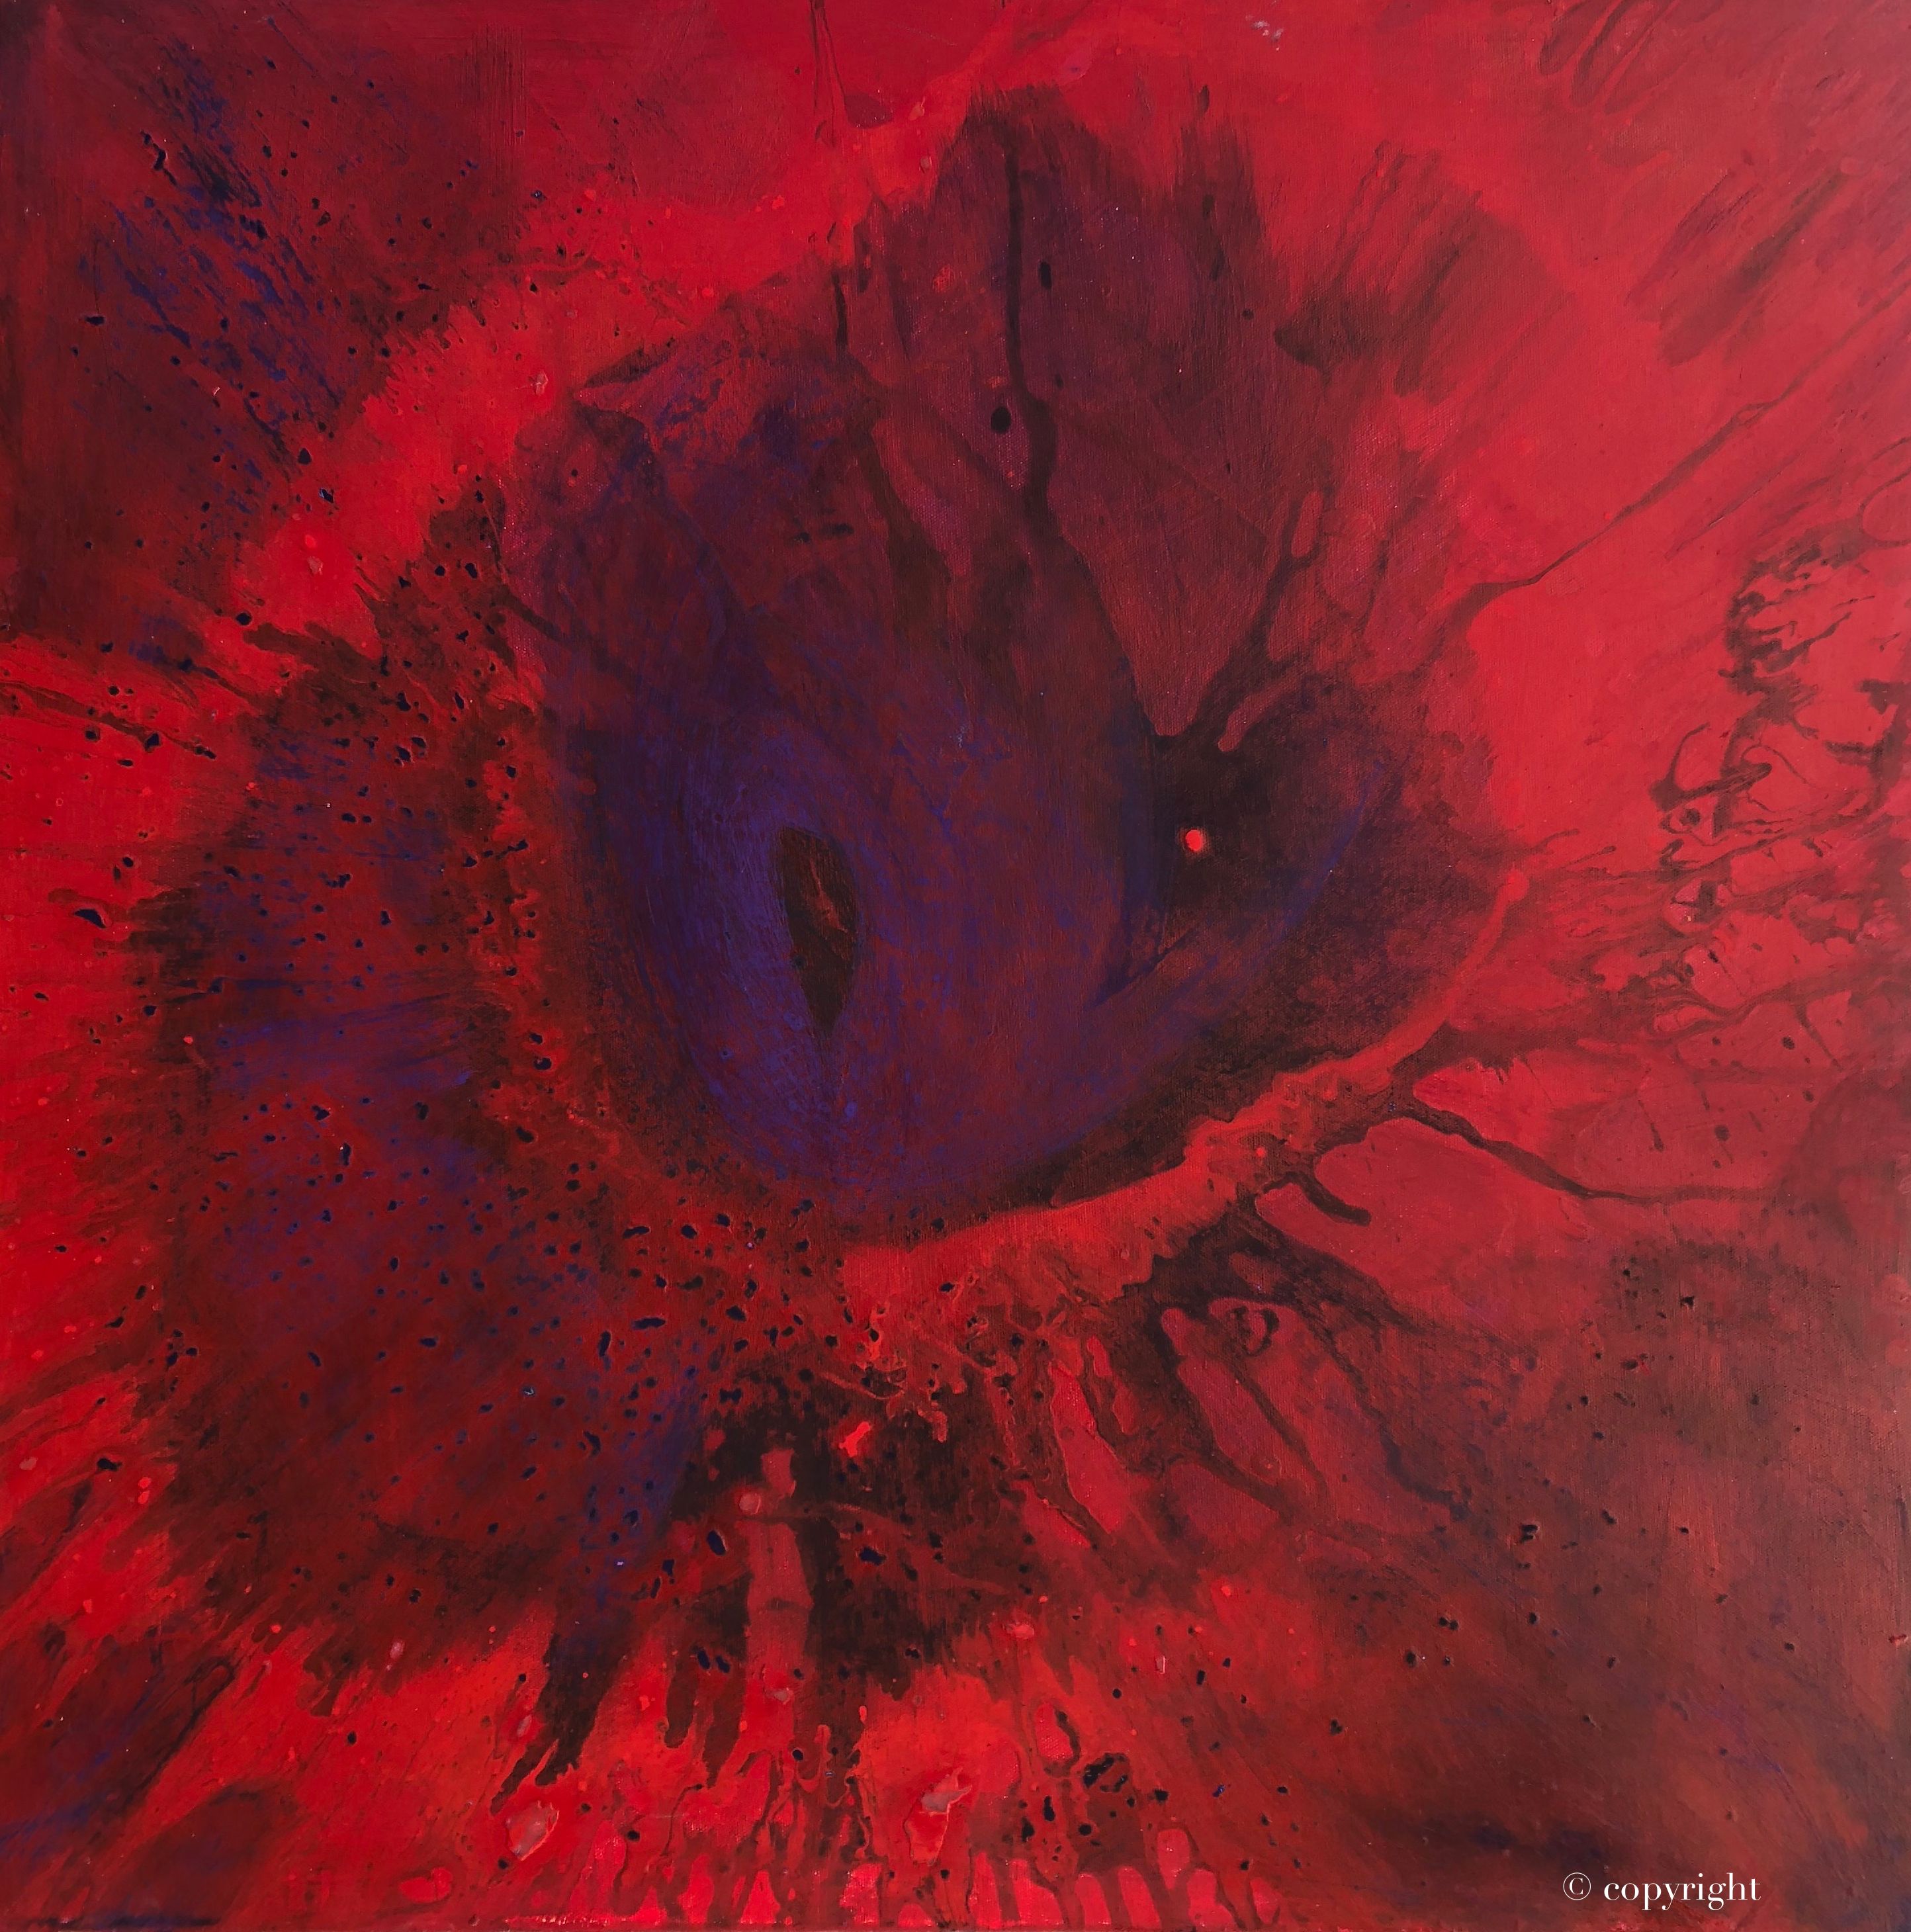 Red Giant is an original acrylic on canvas spin painting